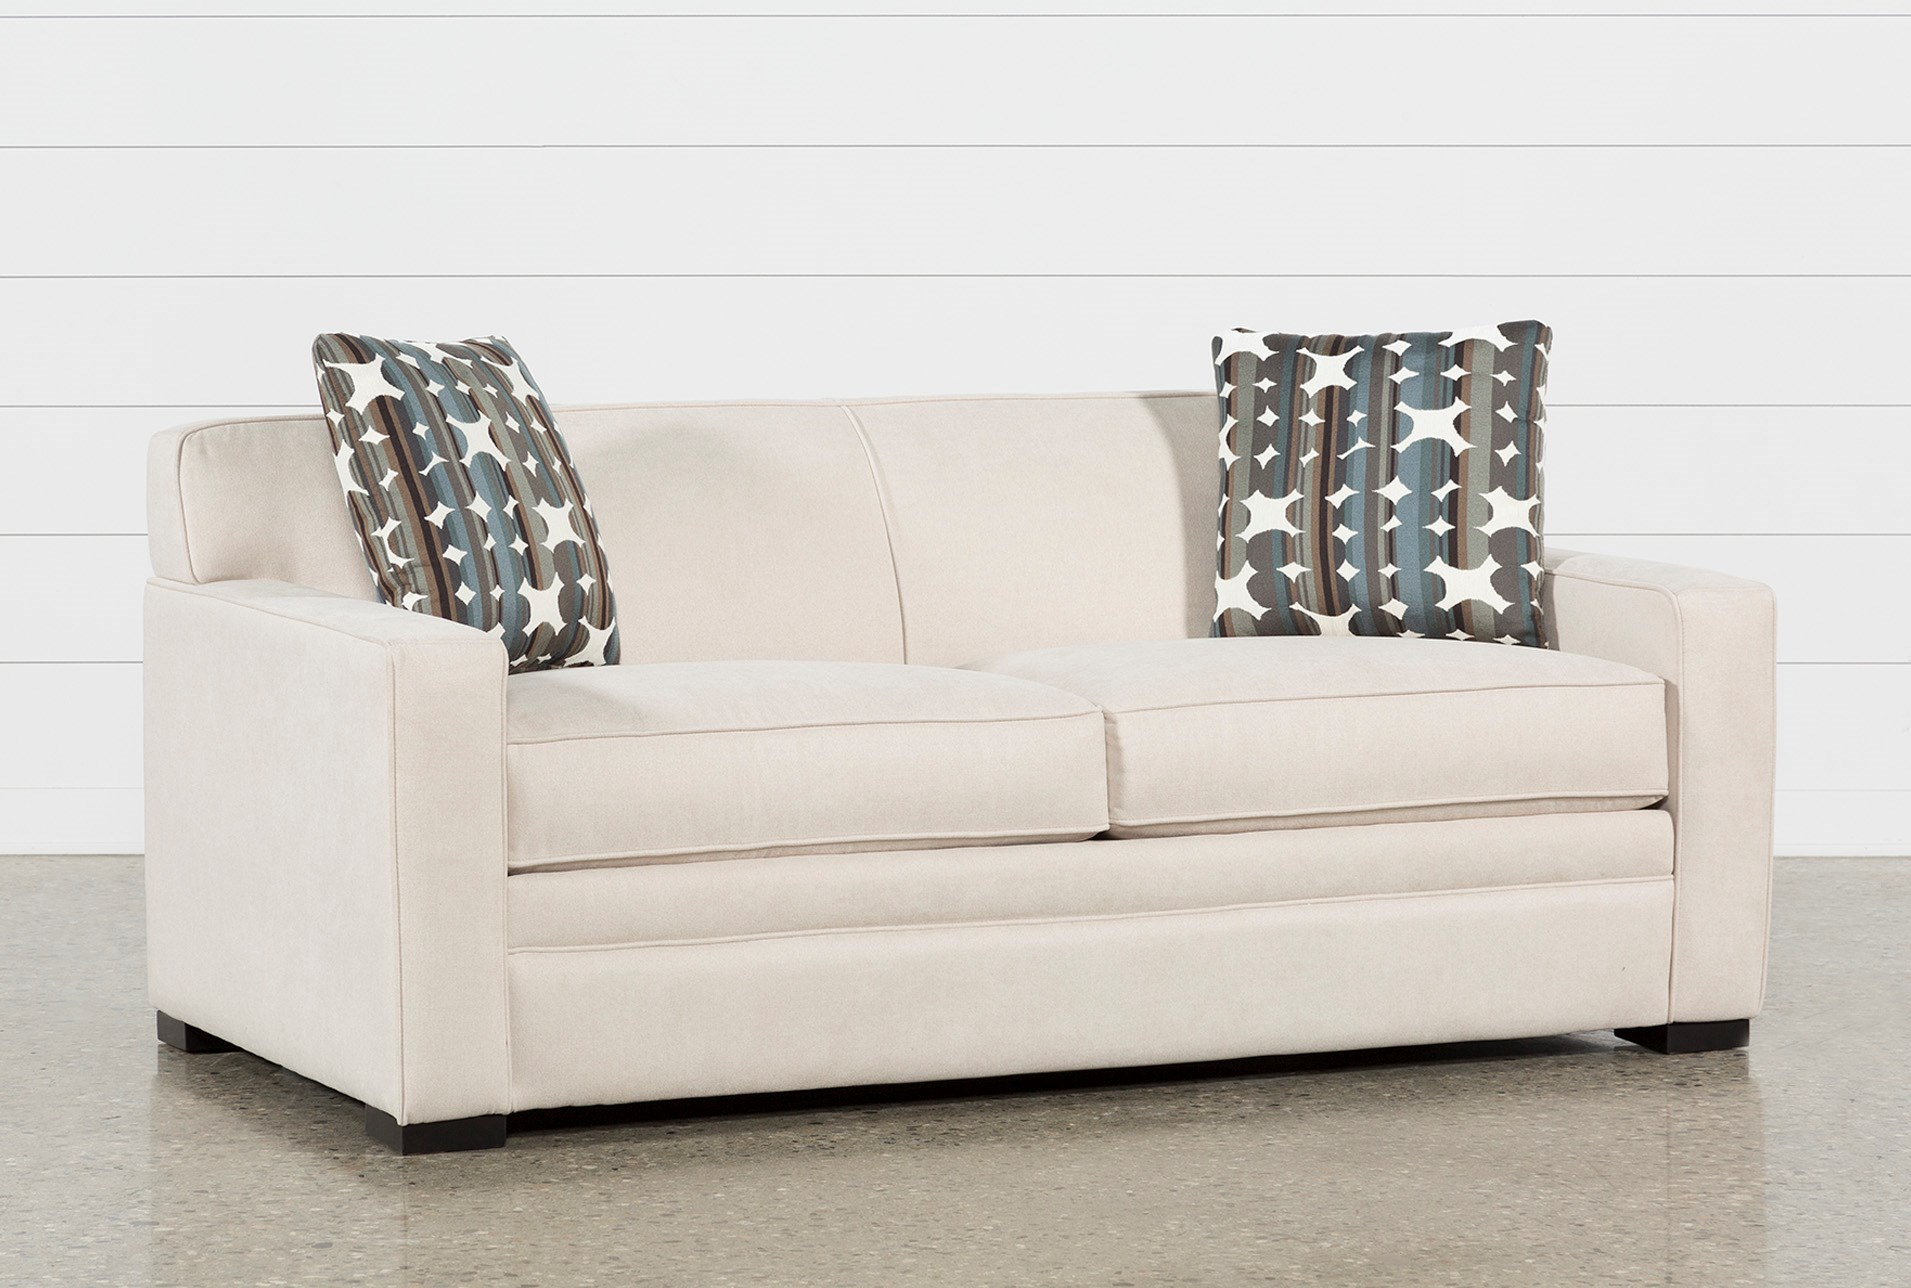 Ethan Ii Pillow Top Full Sleeper Qty 1 Has Been Successfully Added To Your Cart